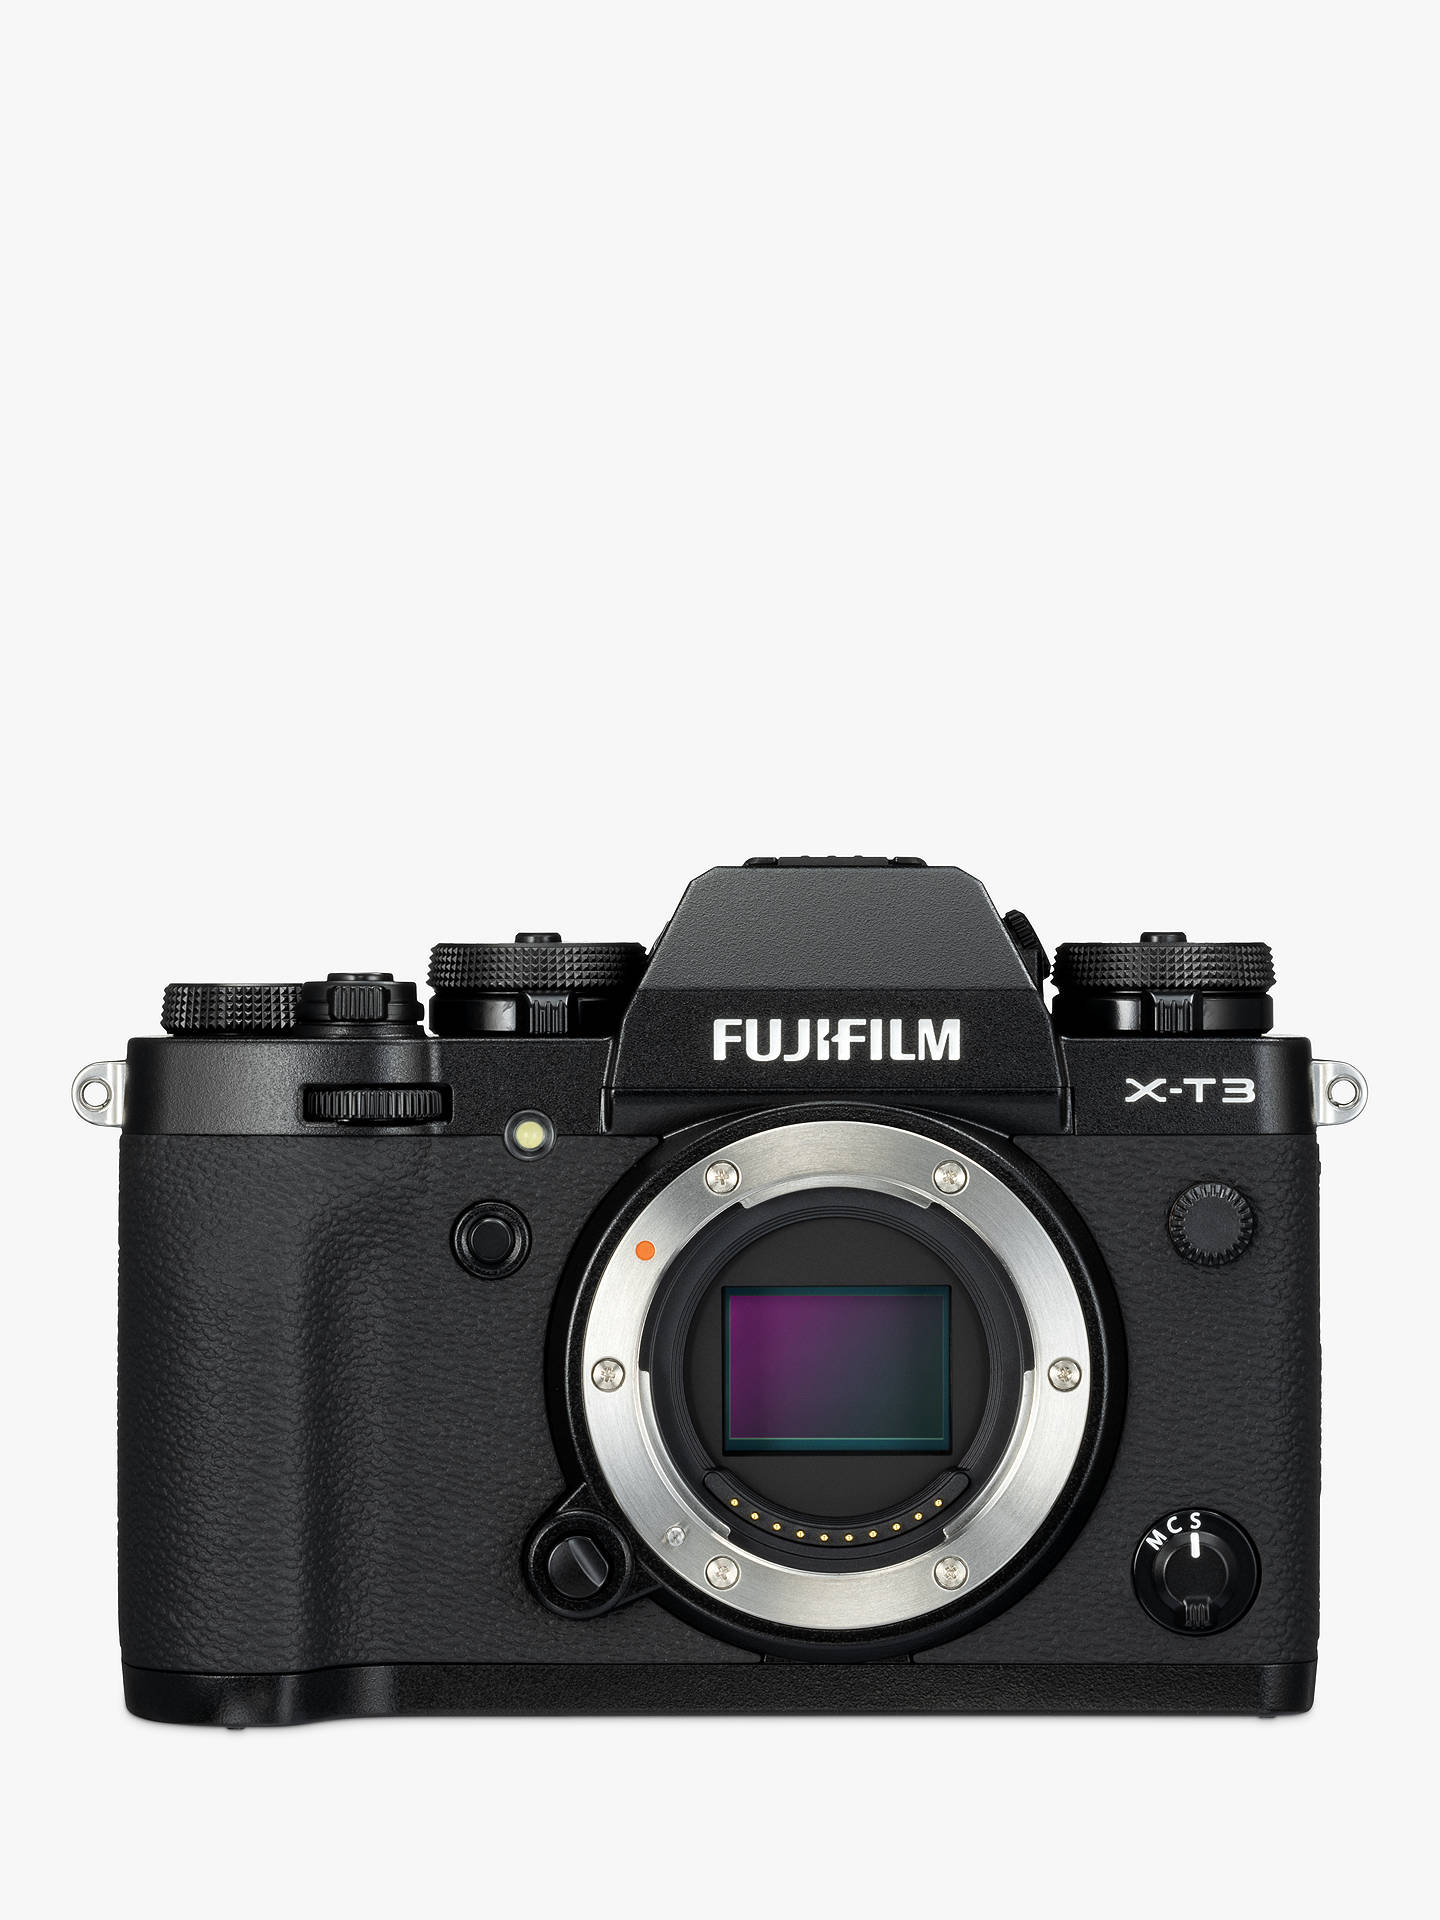 "Buy Fujifilm X-T3 Compact System Camera with XF 18-55mm IS Lens, 4K Ultra HD, 26.1MP, Wi-Fi, OLED EVF, 3"" LCD Touch Screen, Black Online at johnlewis.com"